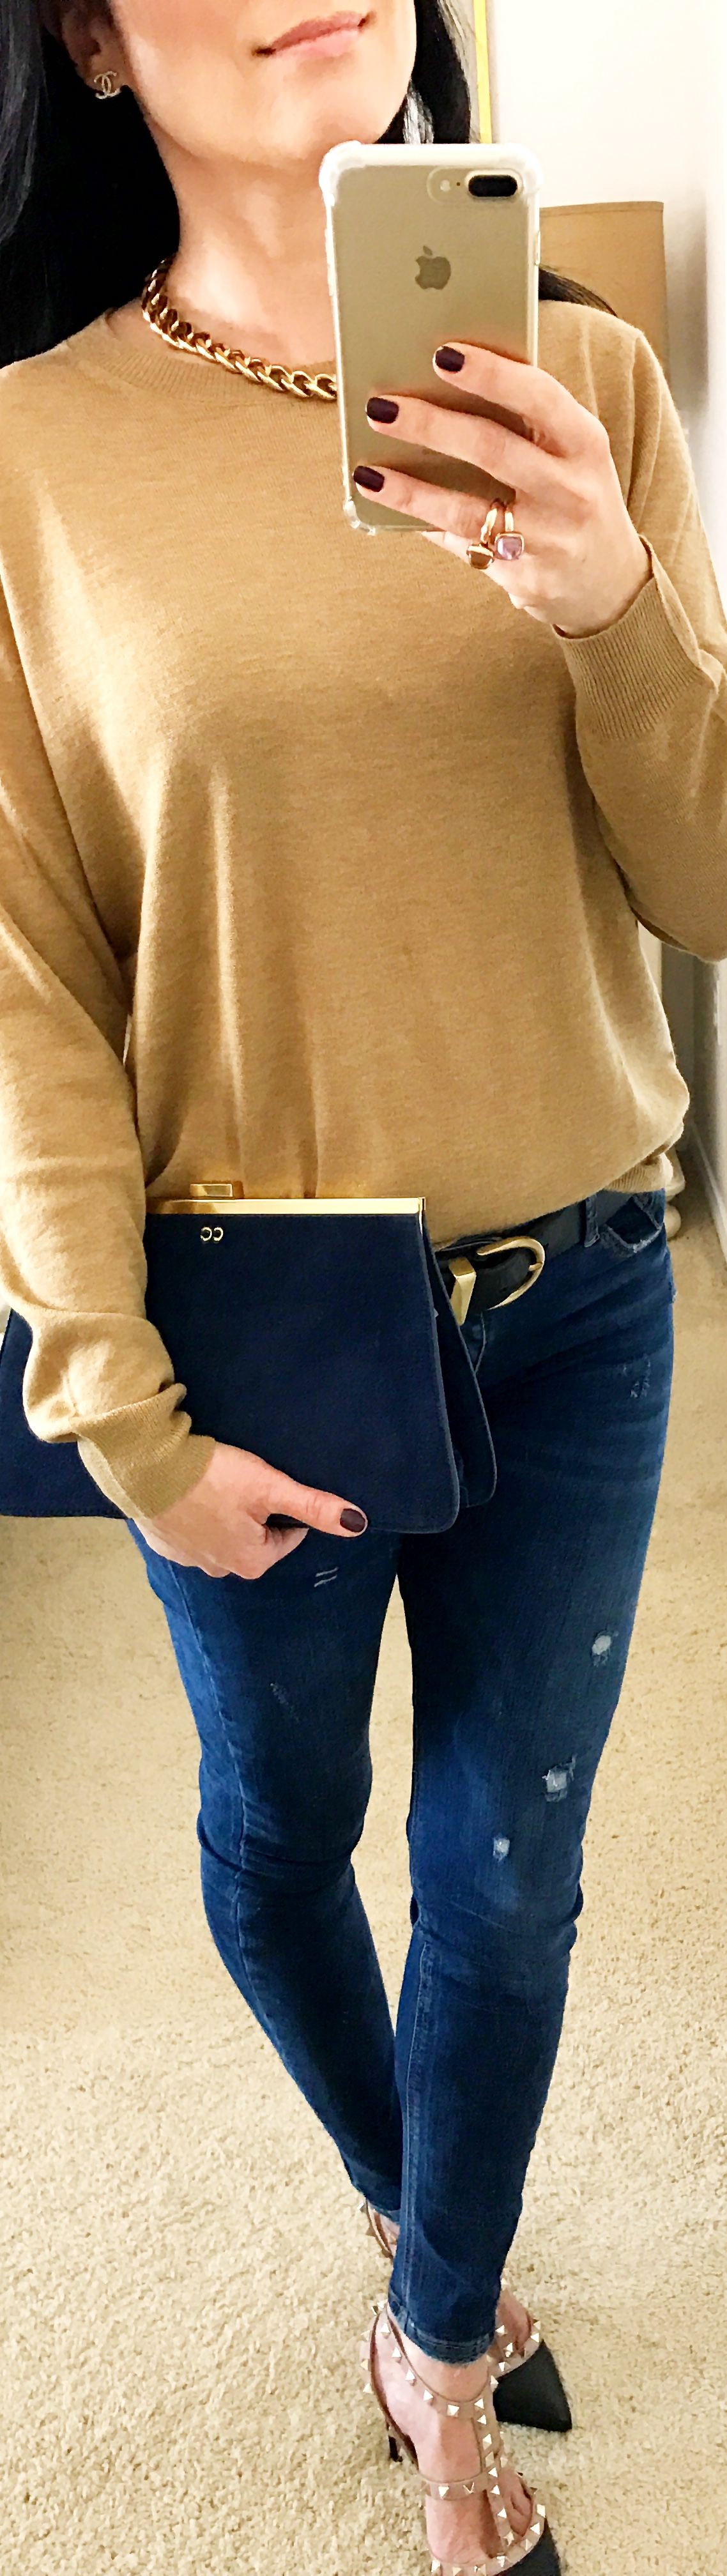 November 16th Zara Sweater Valentino Rockstuds with Blue Suede Clutch